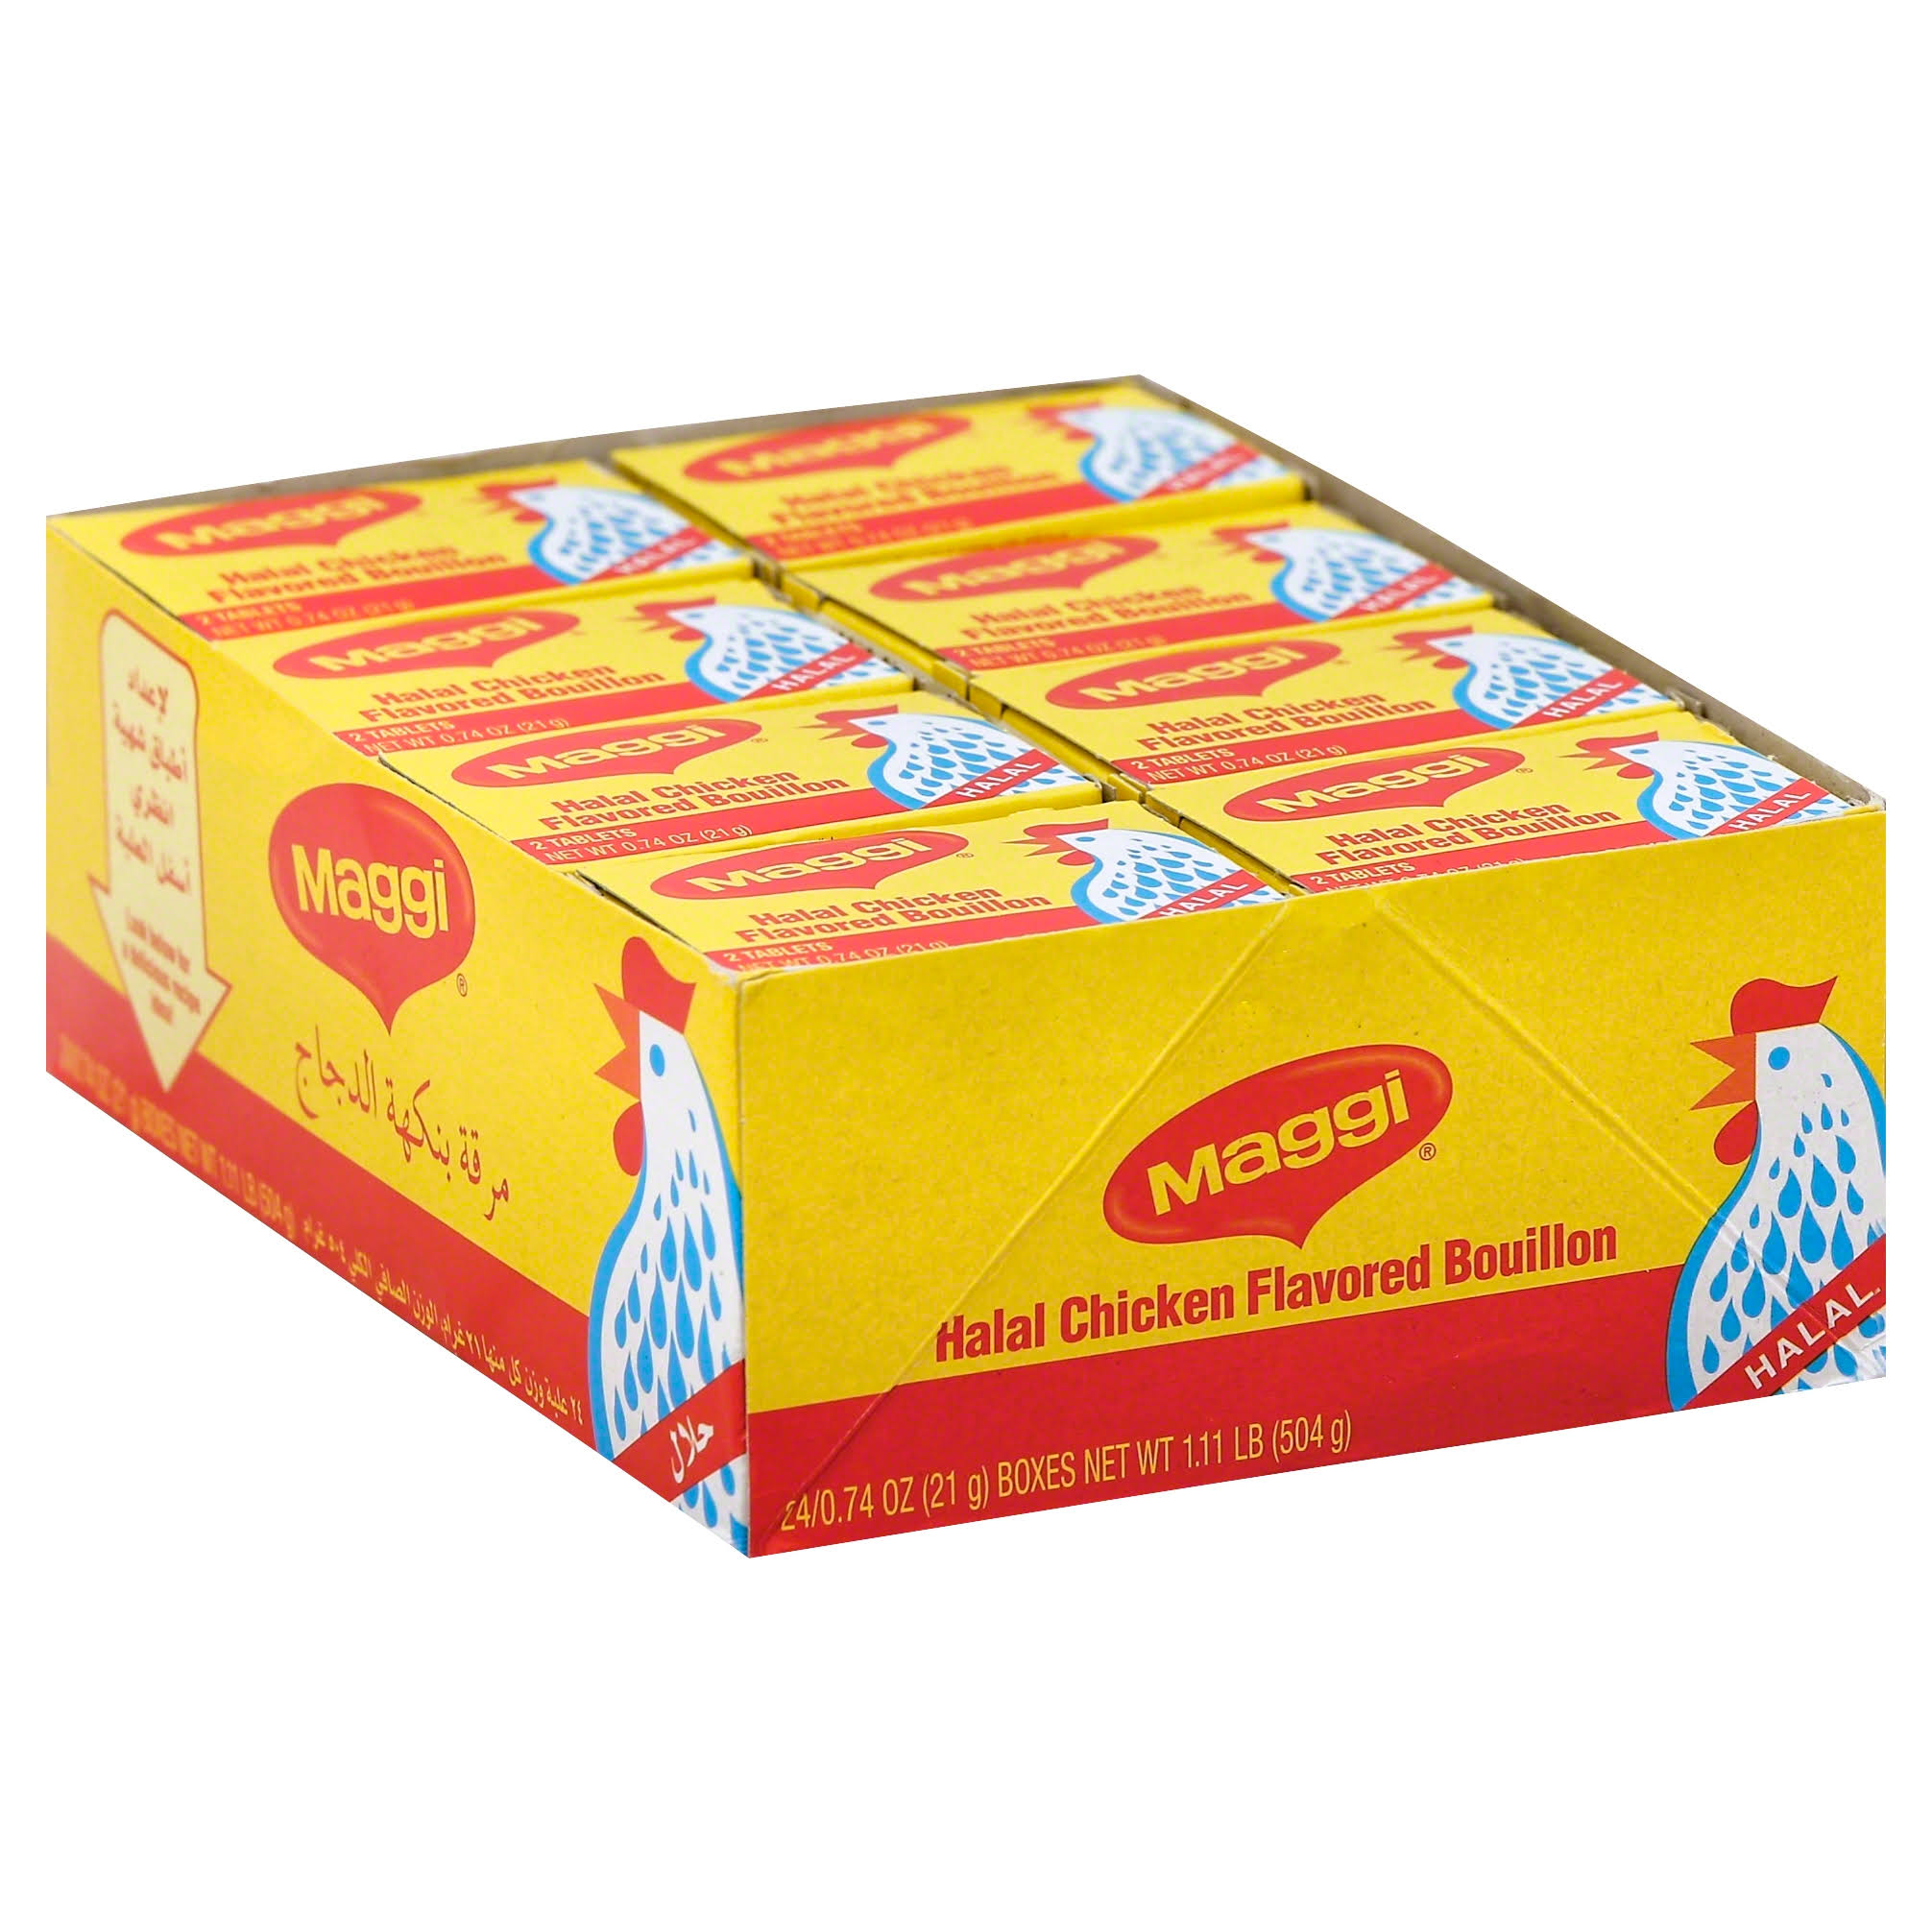 Maggi Bouillon, Halal Chicken Flavored - 24 pack, 0.74 oz boxes